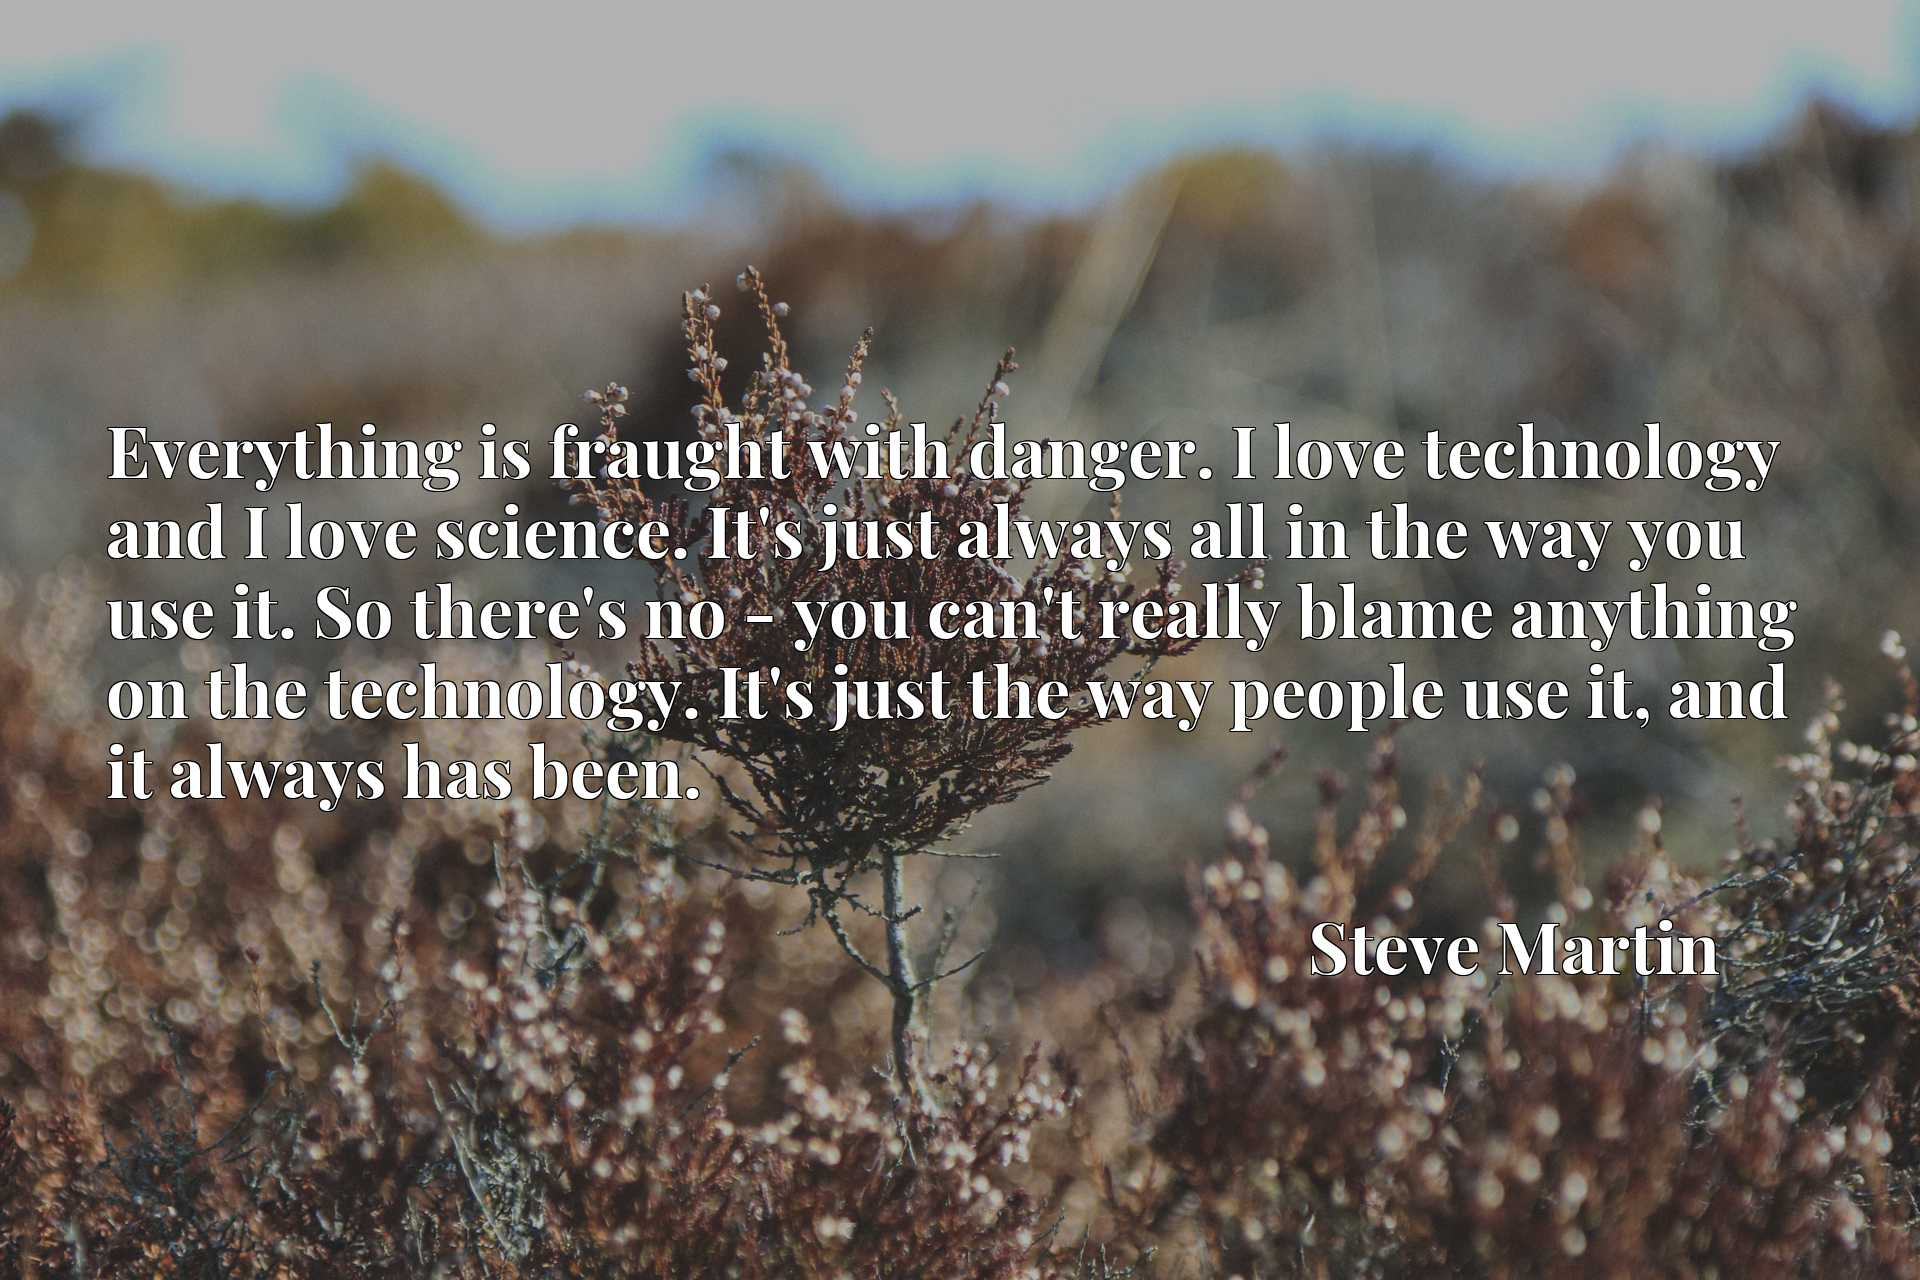 Quote Picture :Everything is fraught with danger. I love technology and I love science. It's just always all in the way you use it. So there's no - you can't really blame anything on the technology. It's just the way people use it, and it always has been.